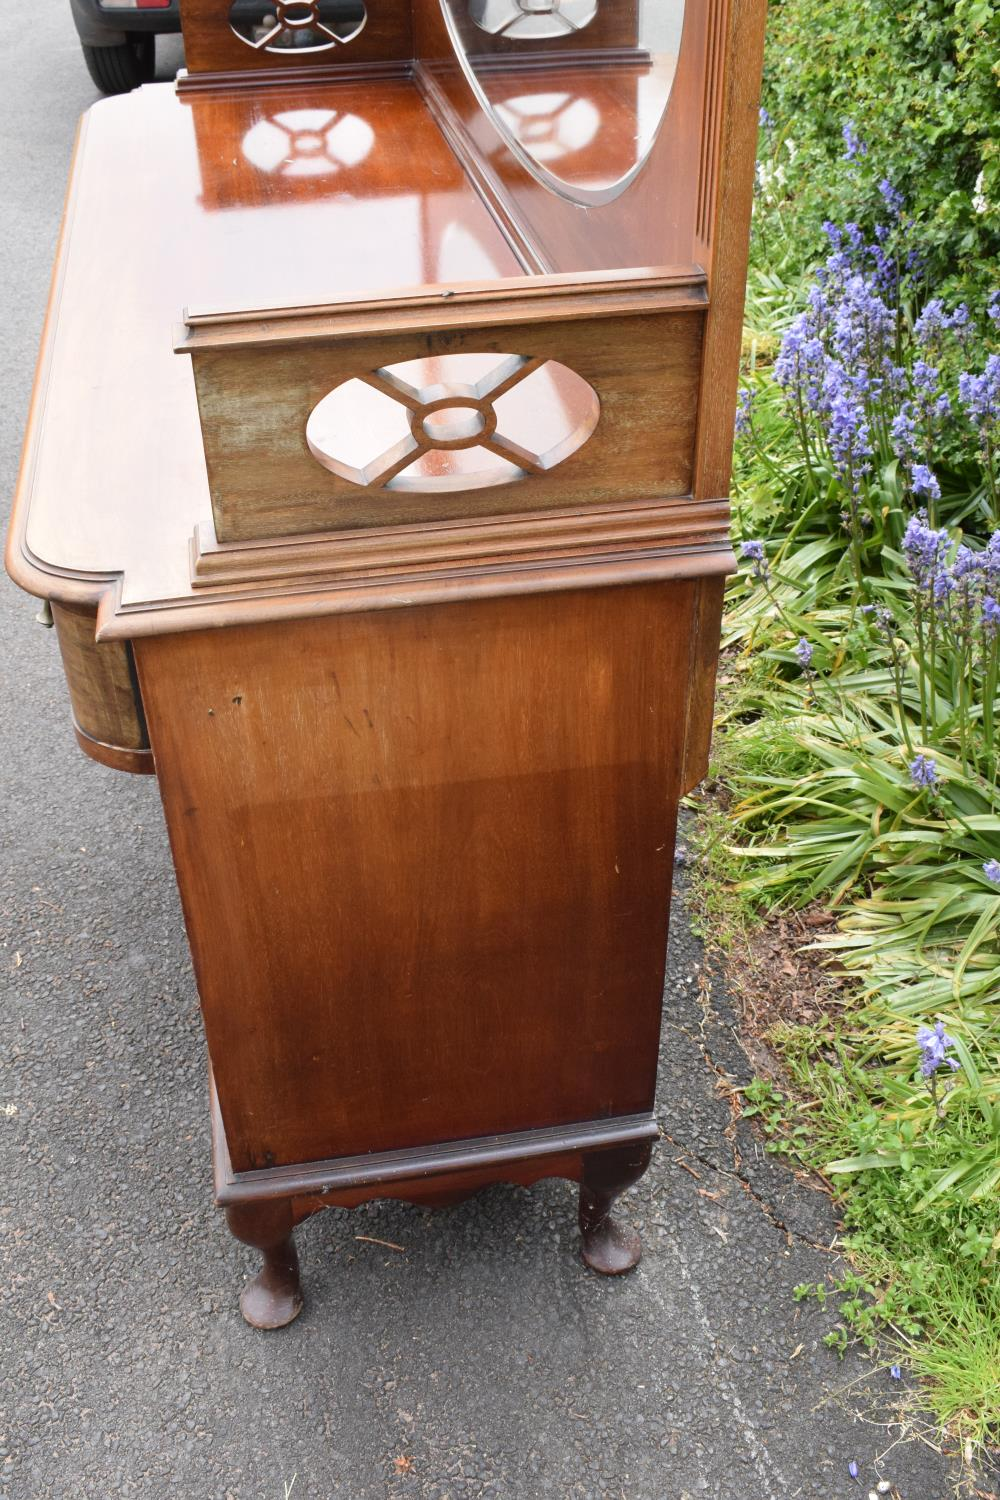 Edwardian mirror backed sideboard/ drinks cabinet. 168 x 56 x 183cm. The top section lifts off and - Image 10 of 11